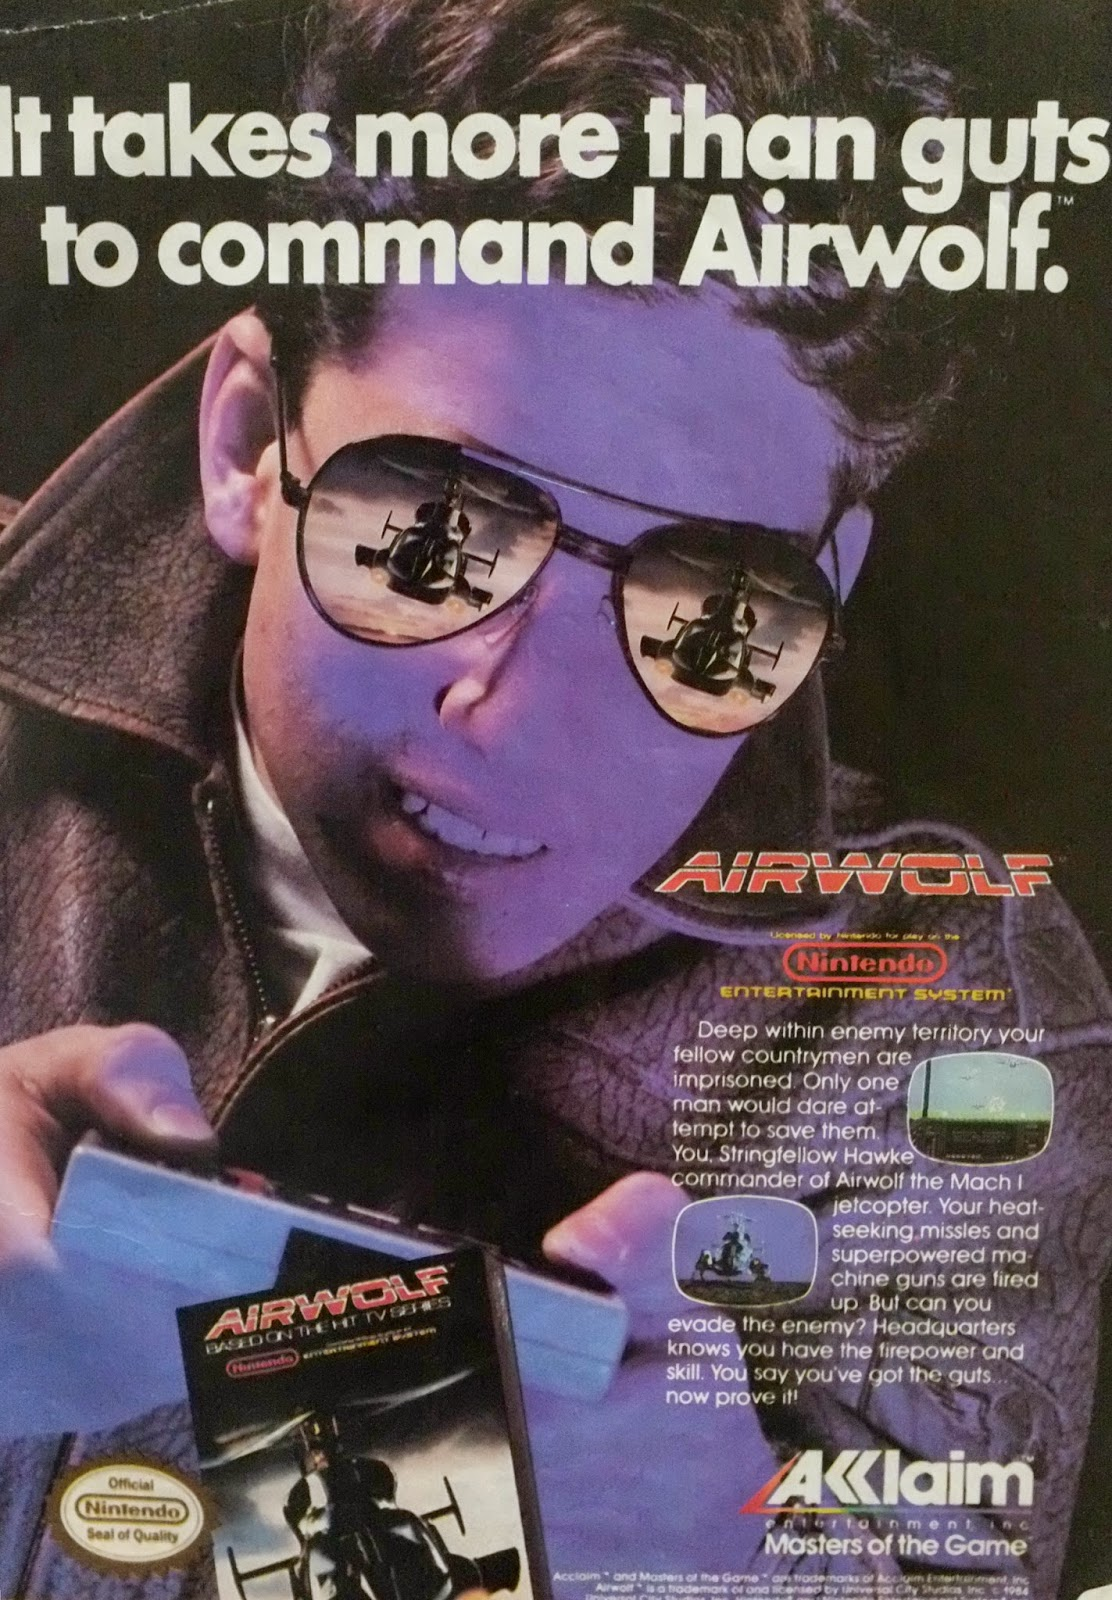 Airwolf for NES advertisement